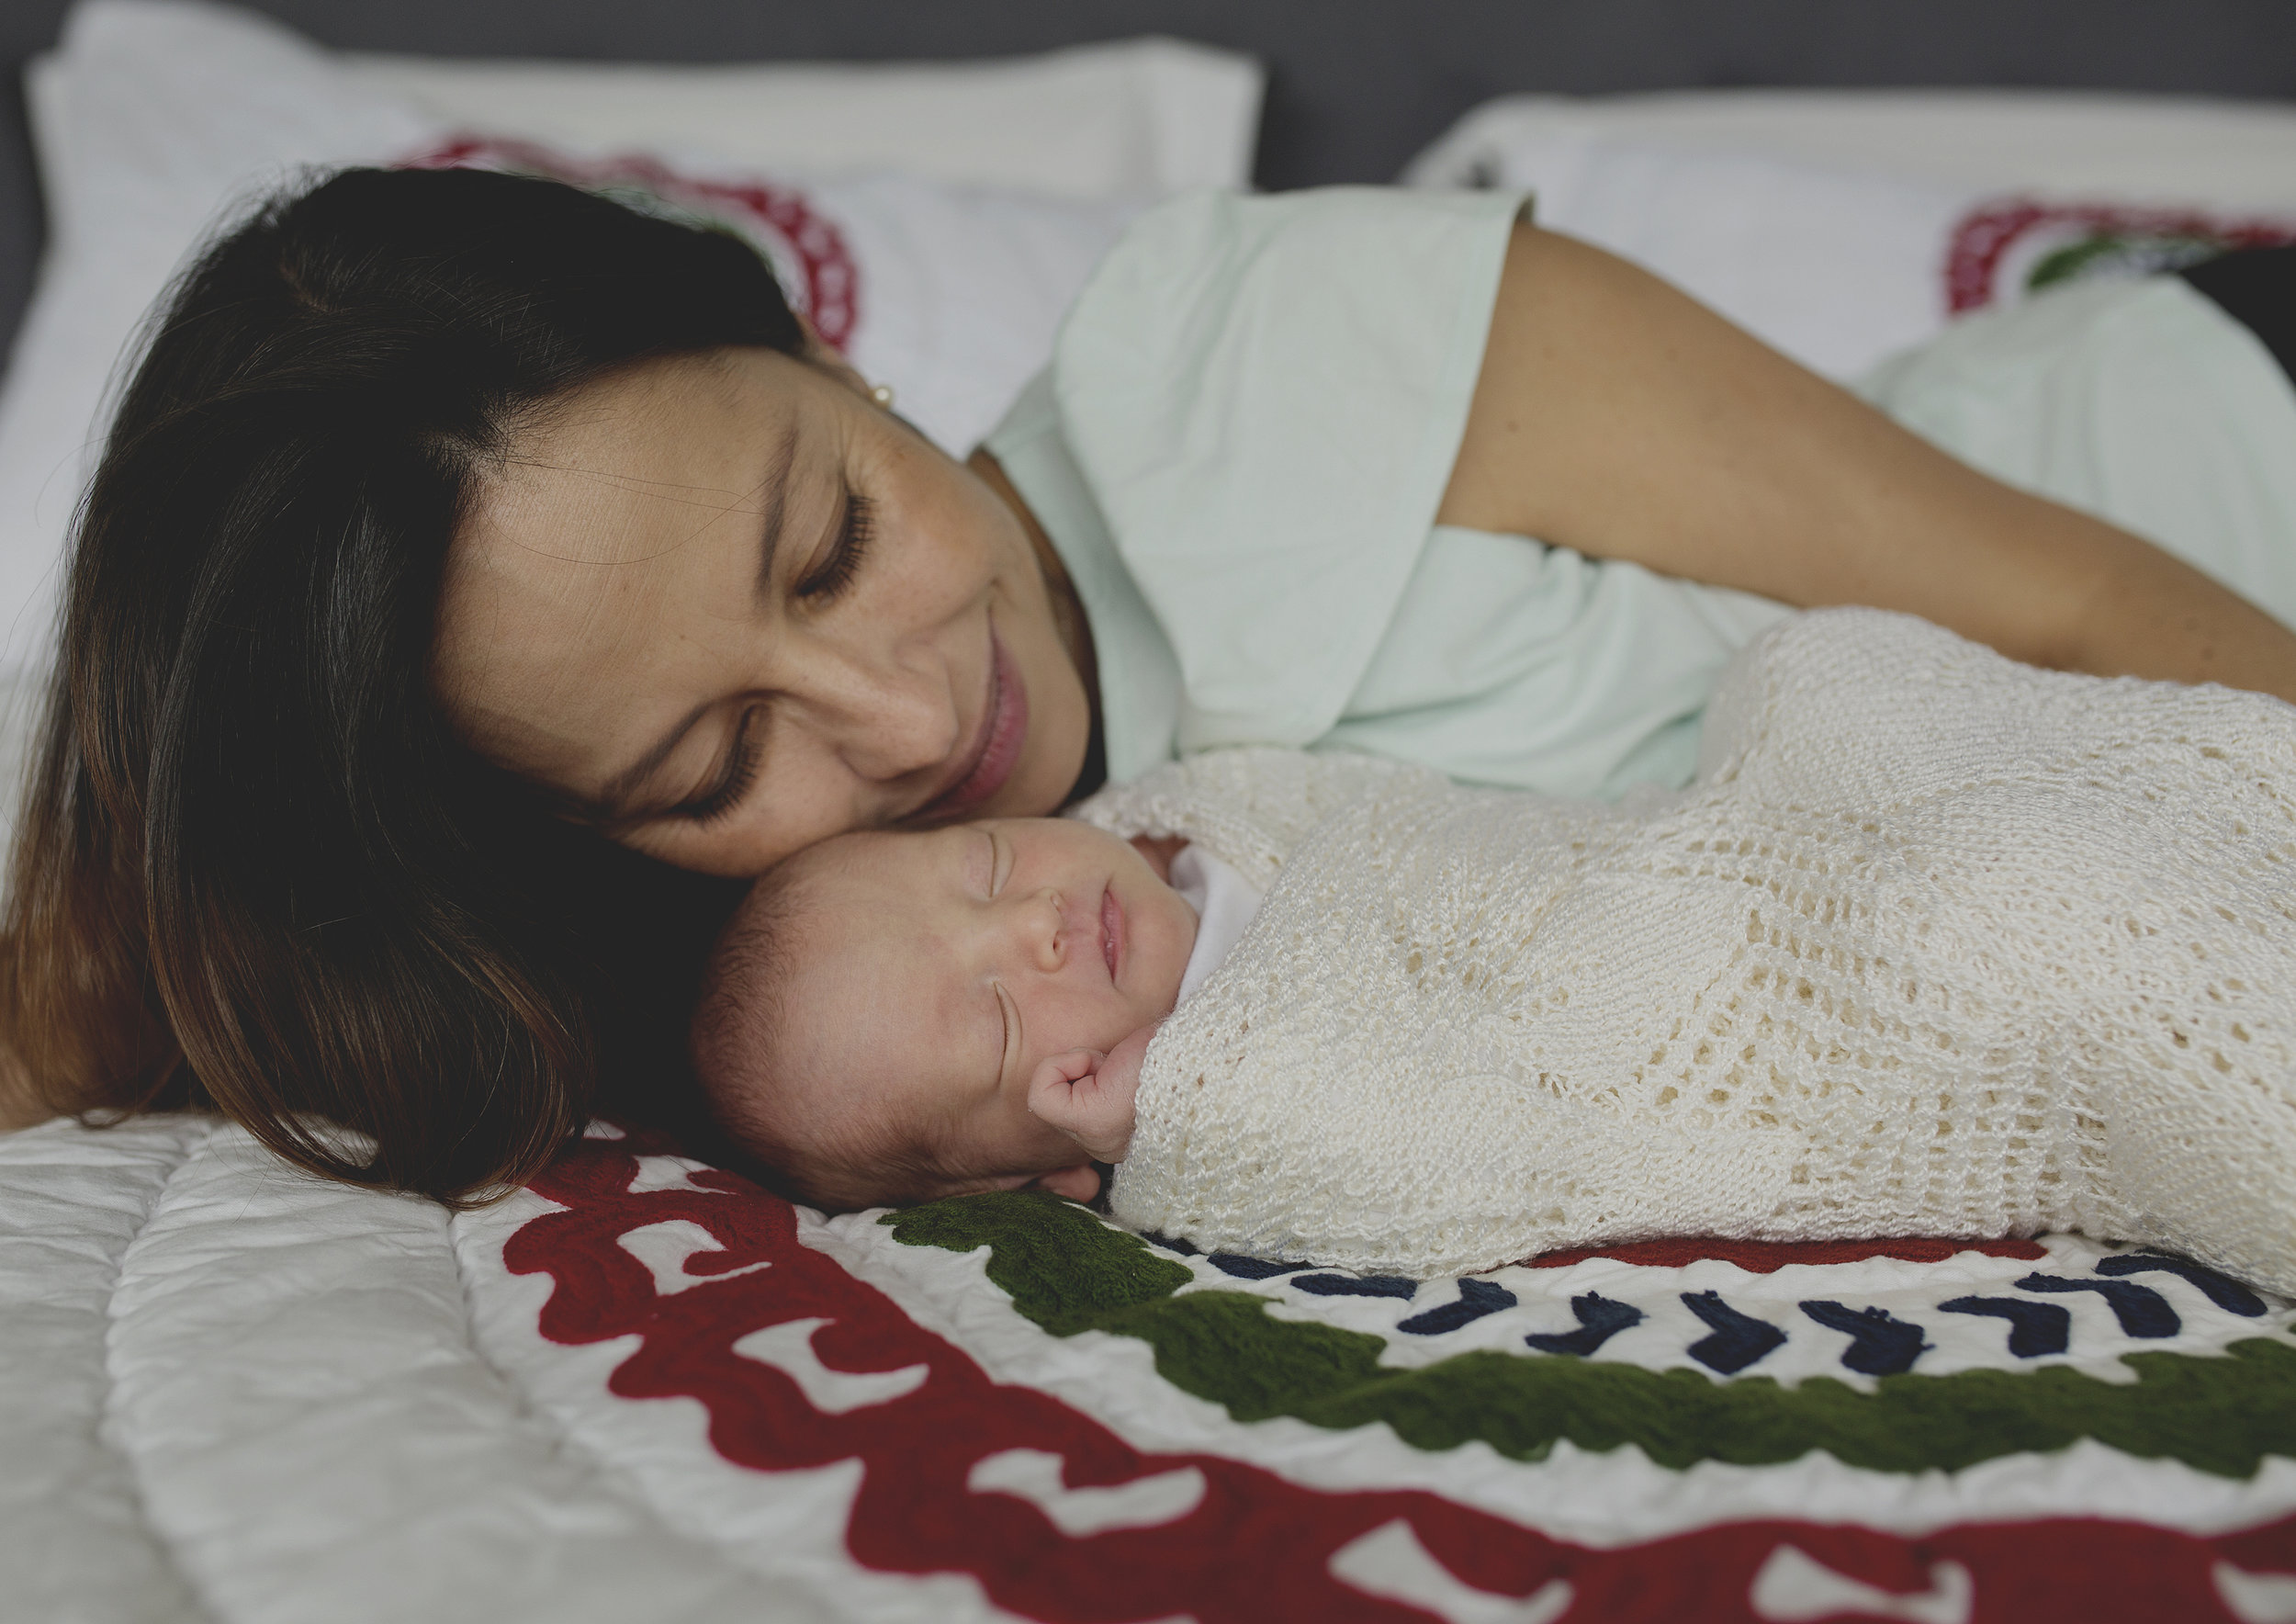 Mother's love for her newborn baby girl